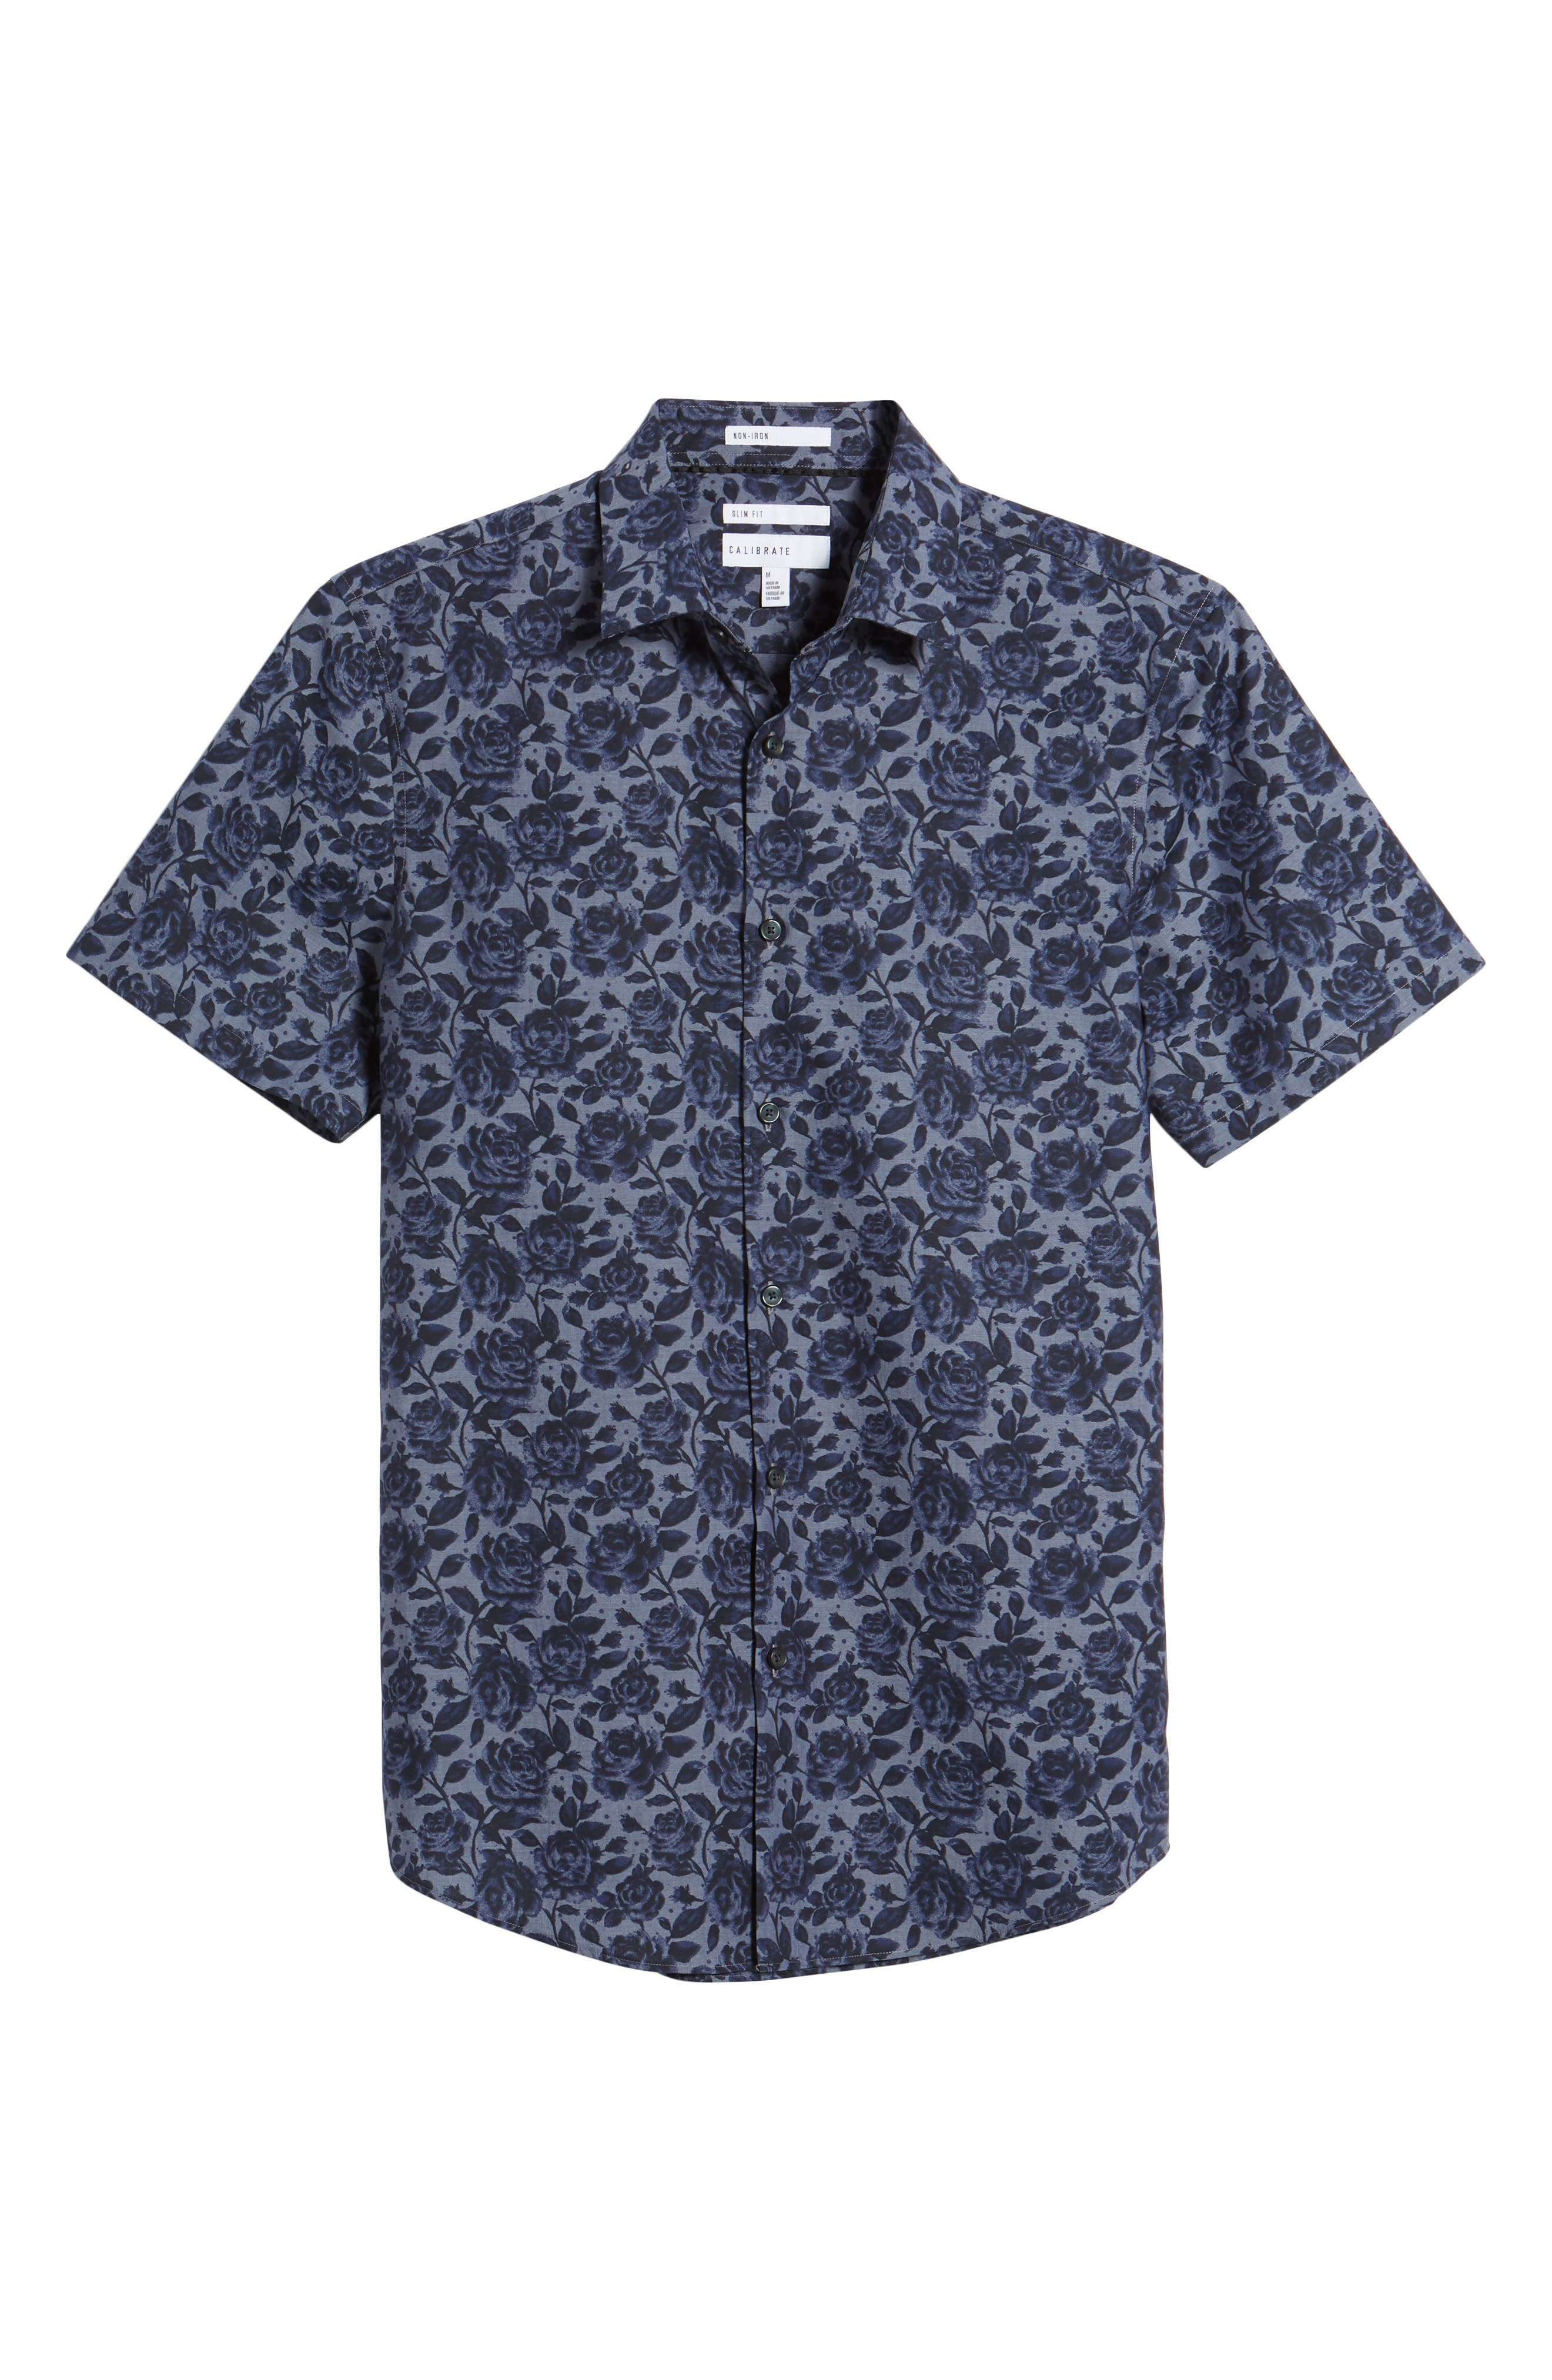 Floral Print Sport Shirt,                             Alternate thumbnail 6, color,                             410